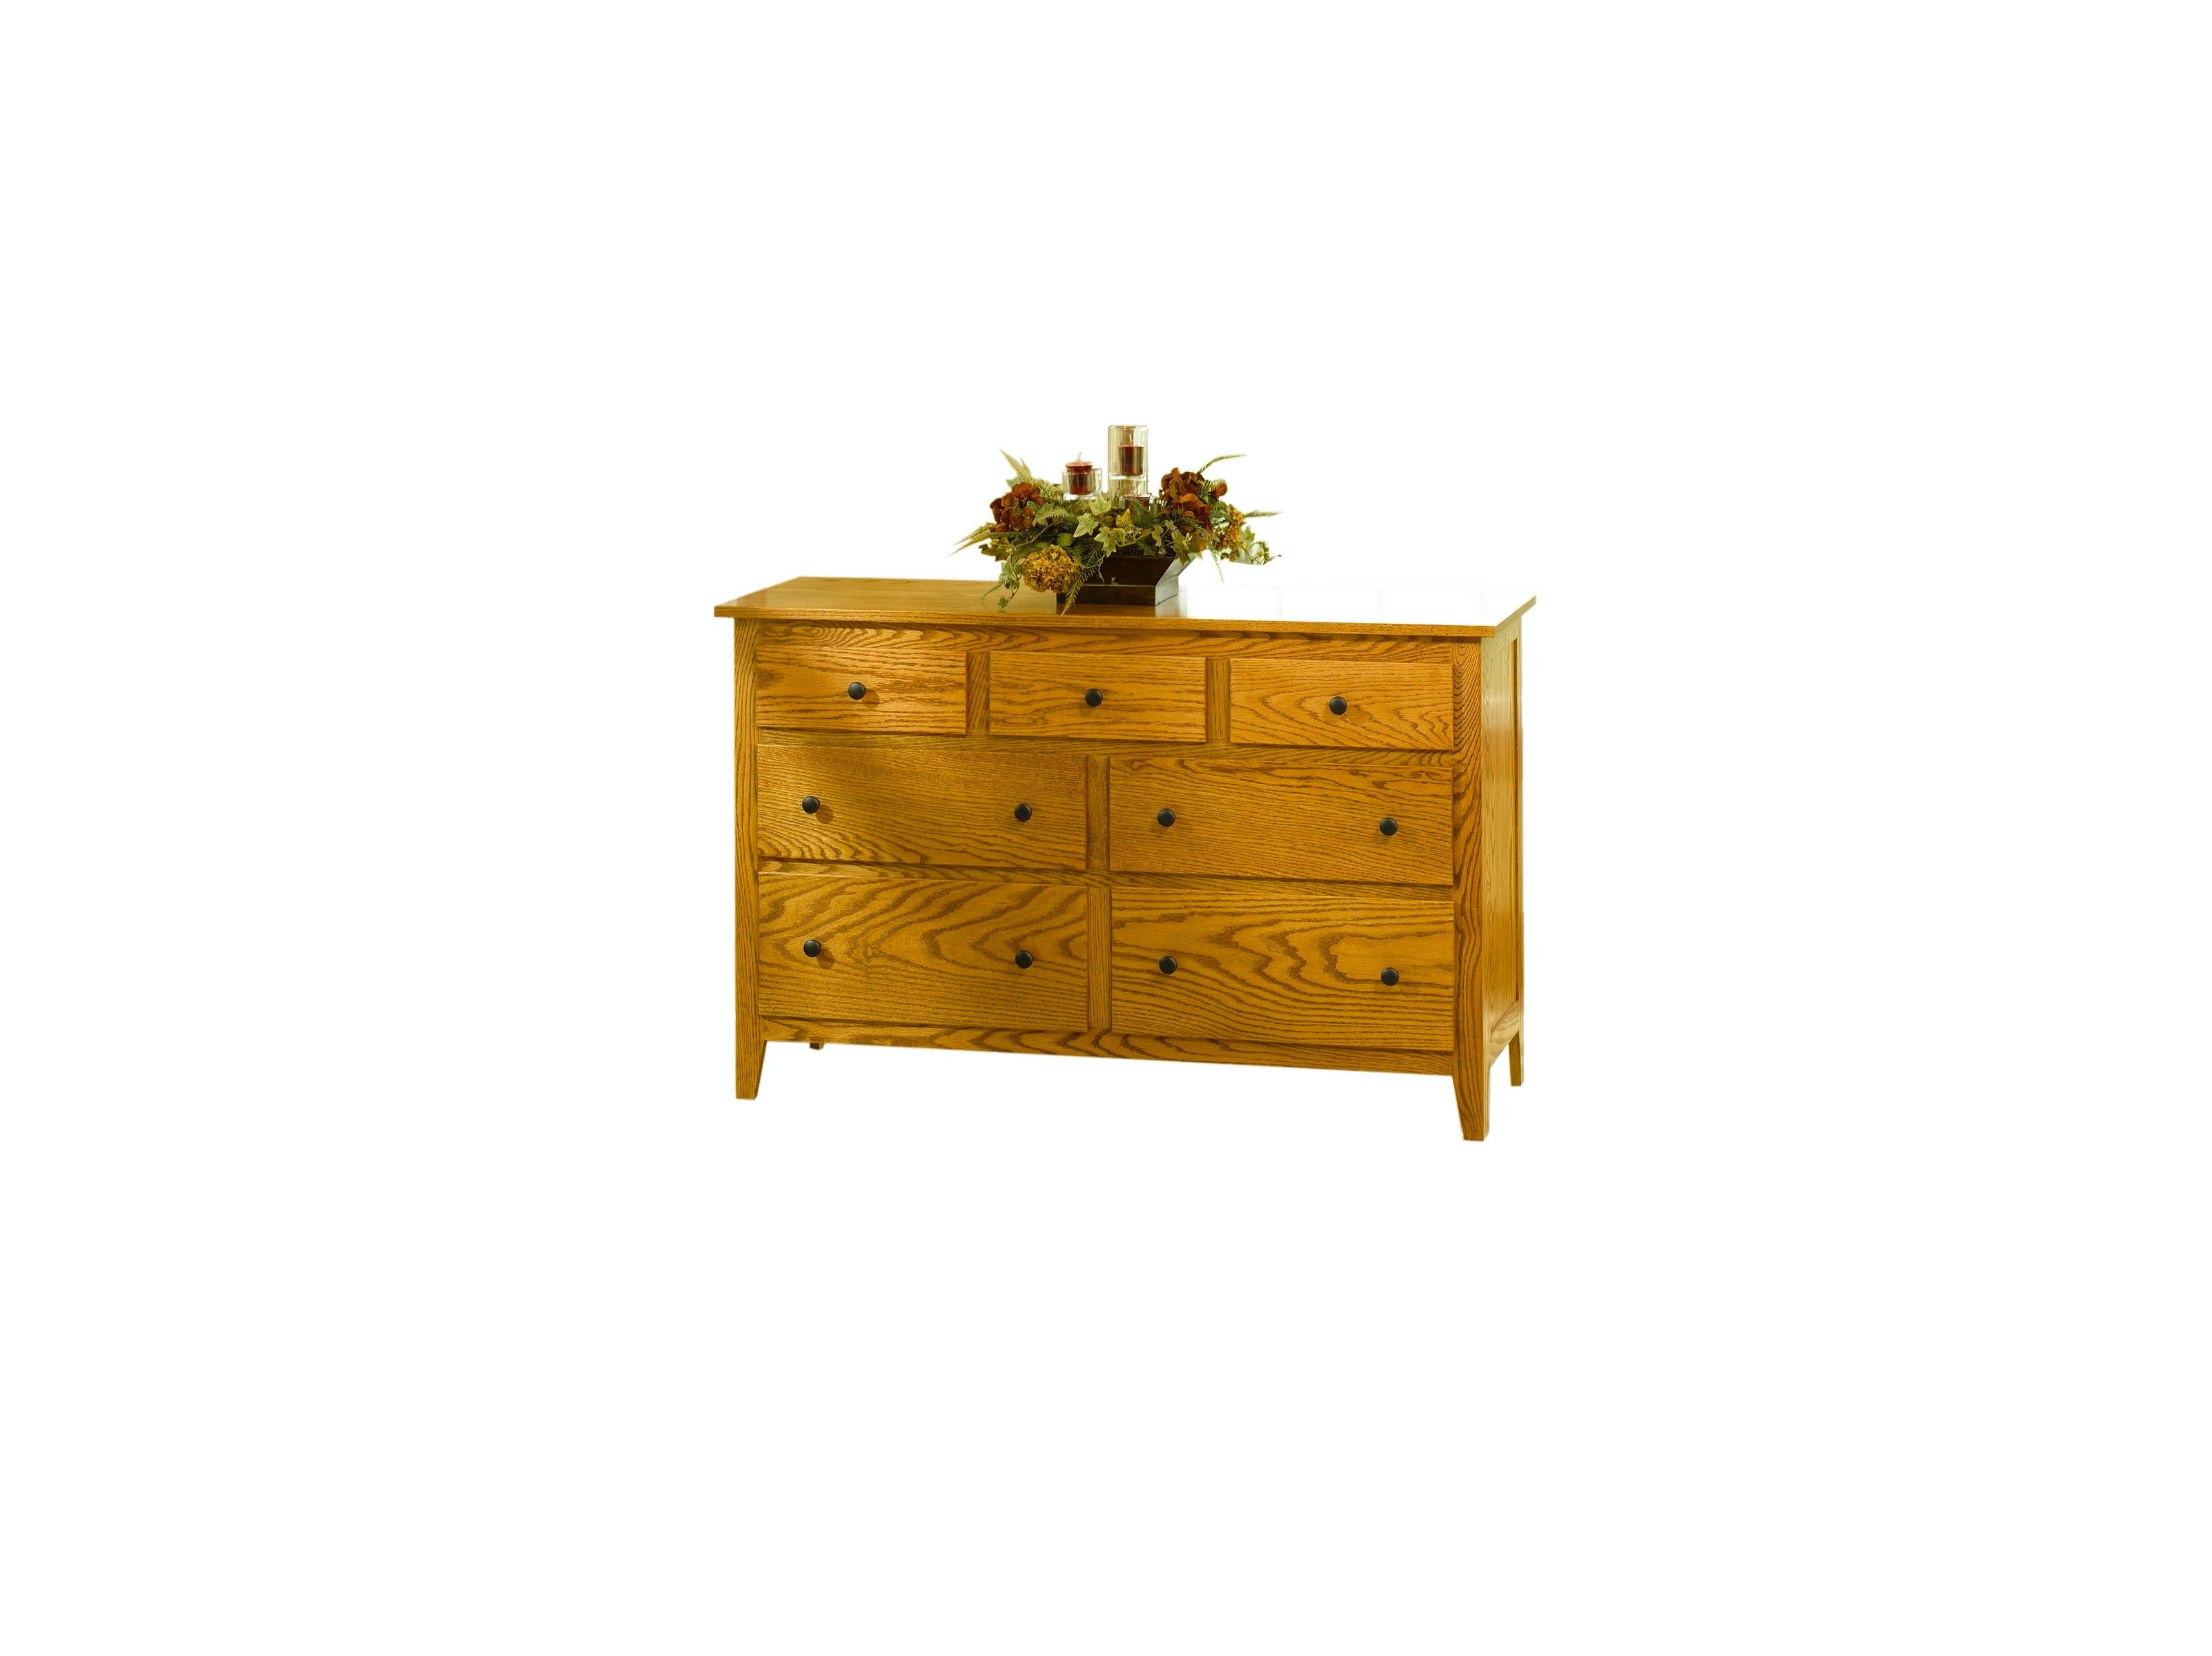 YUTZY WOODWORKING Jamestown Square Dresser 56001